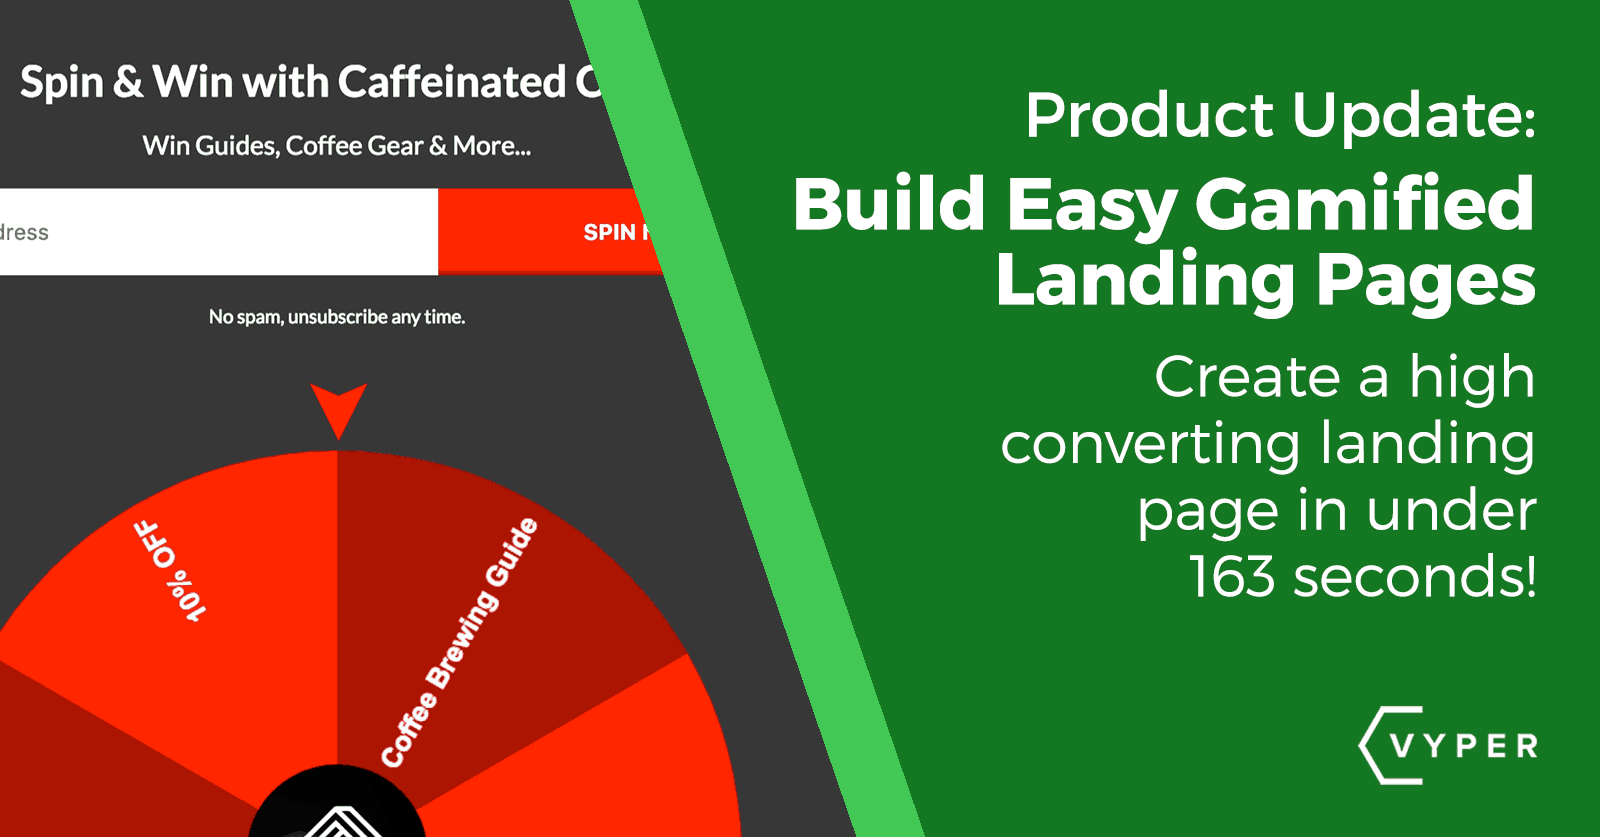 How to Create a Landing Page in Under 163 seconds